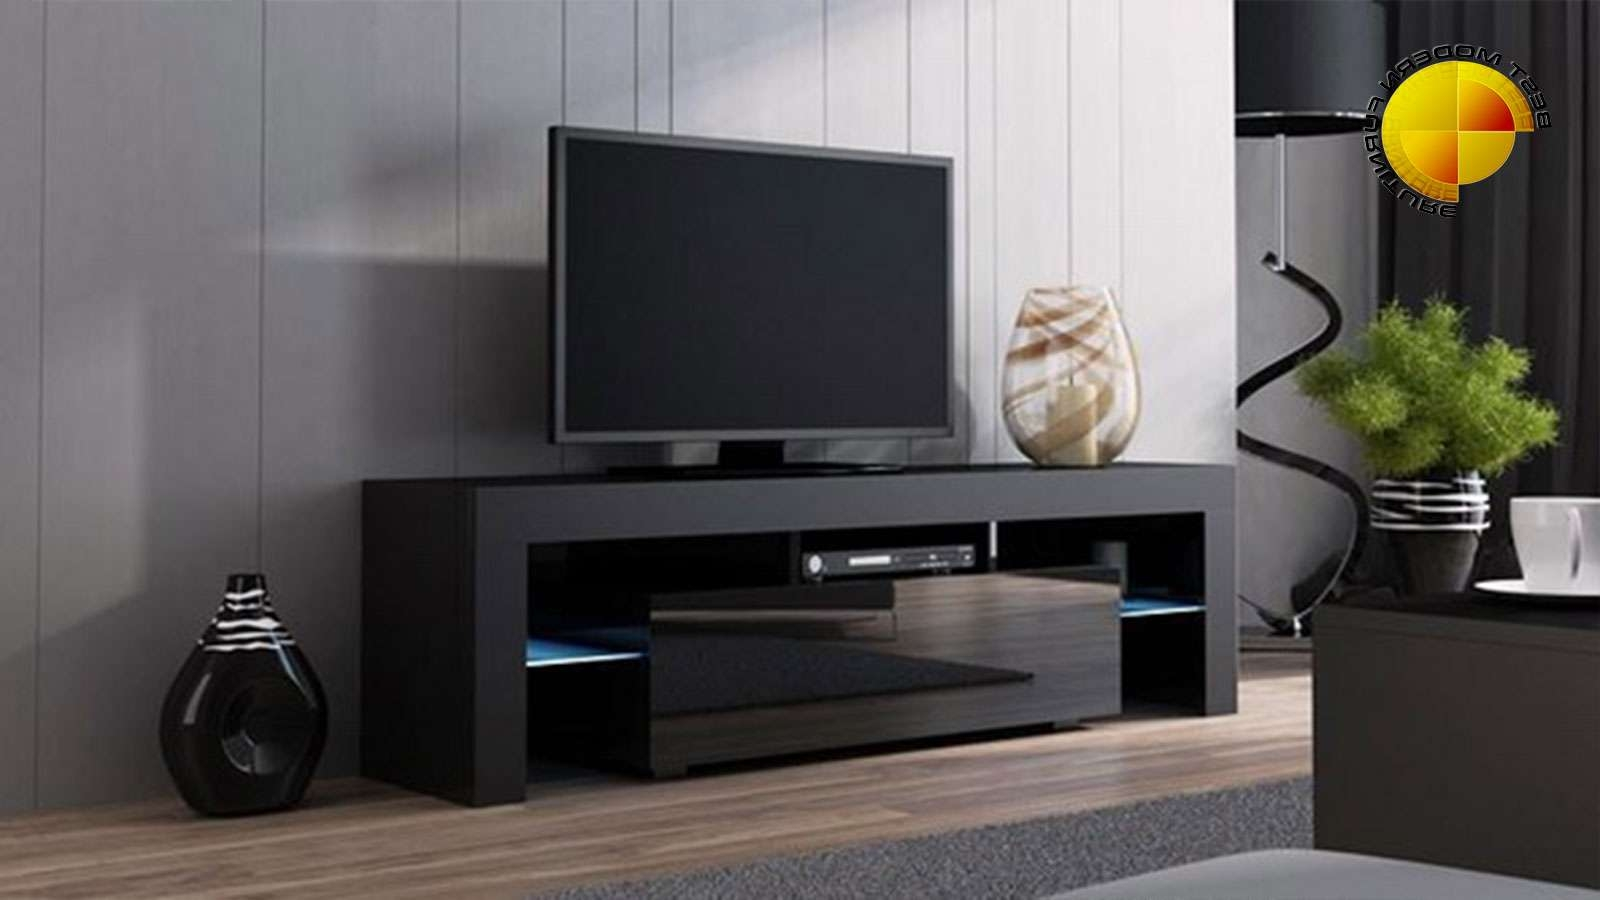 Modern Tv Stand 160Cm High Gloss Cabinet Rgb Led Lights Black Unit With Black Modern Tv Stands (View 10 of 15)